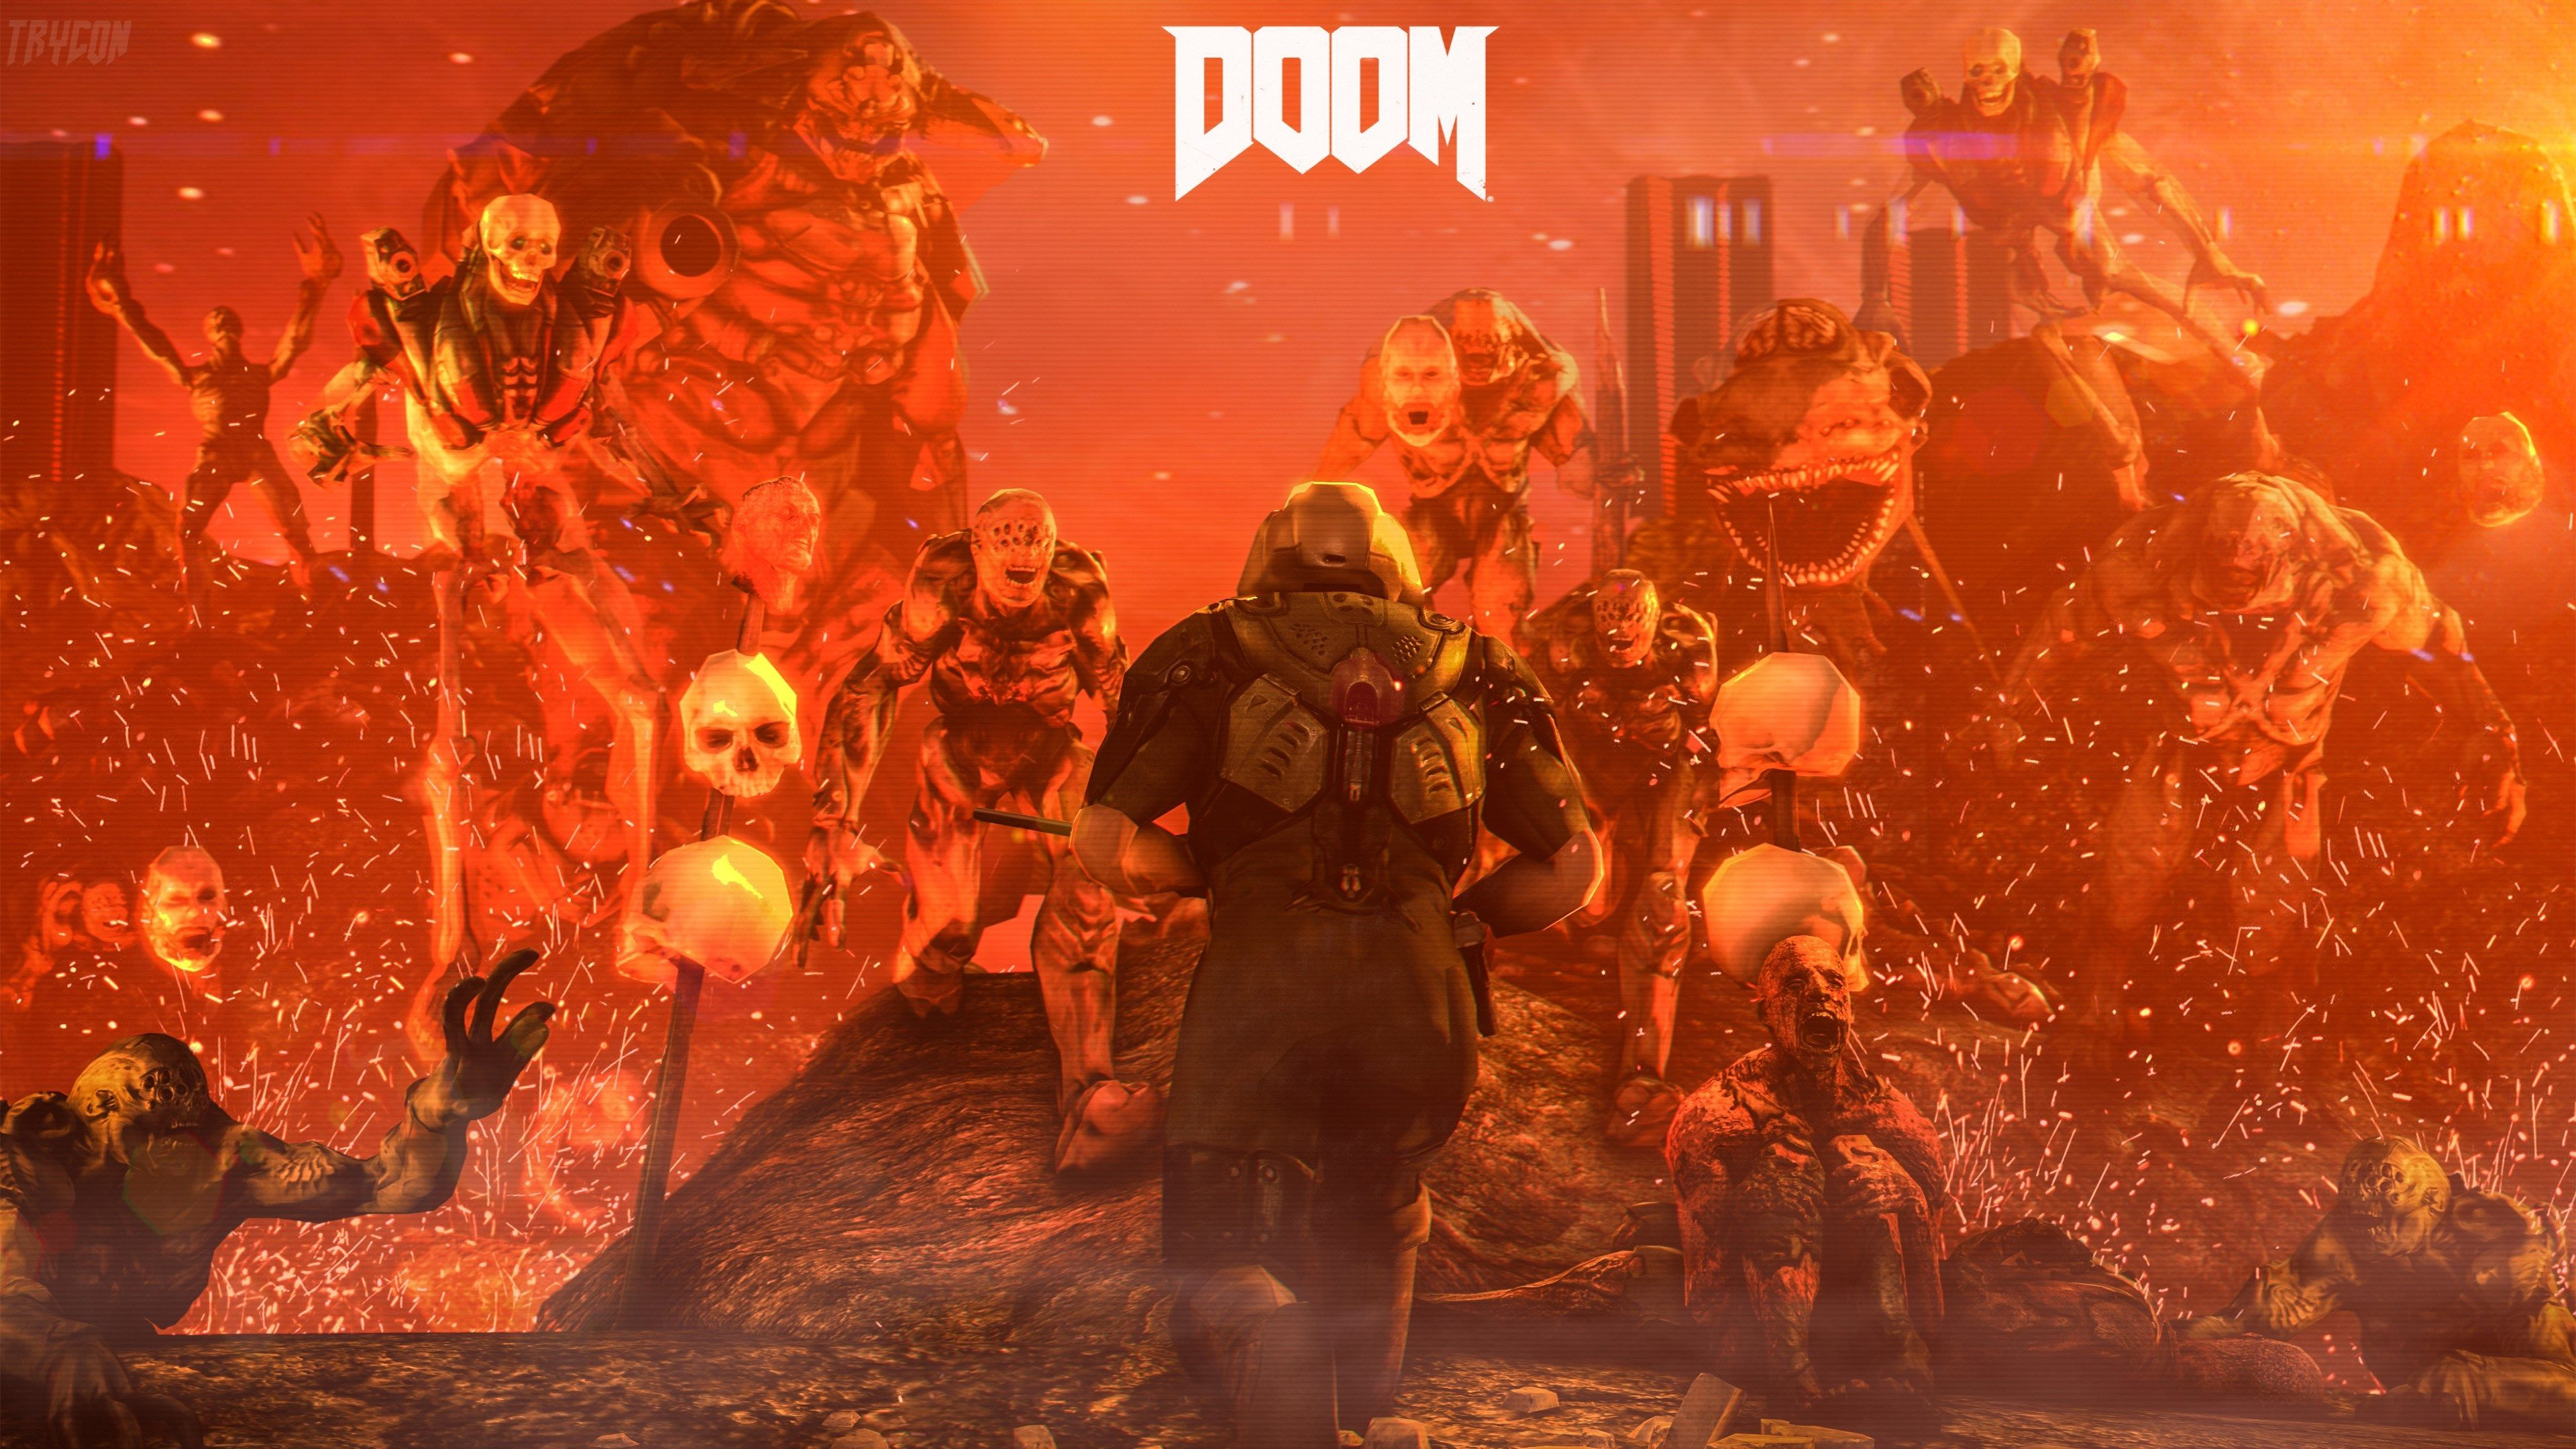 3840x2160 Doom 4k Background Hd Desktop Doom Cover Doom 4